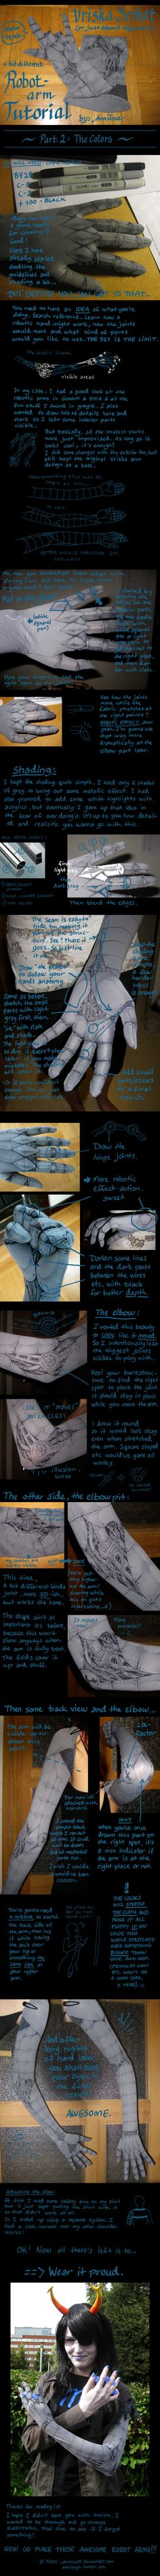 Vriska robot arm TUTORIAL 2of2 by Anniina85.deviantart.com on @deviantART